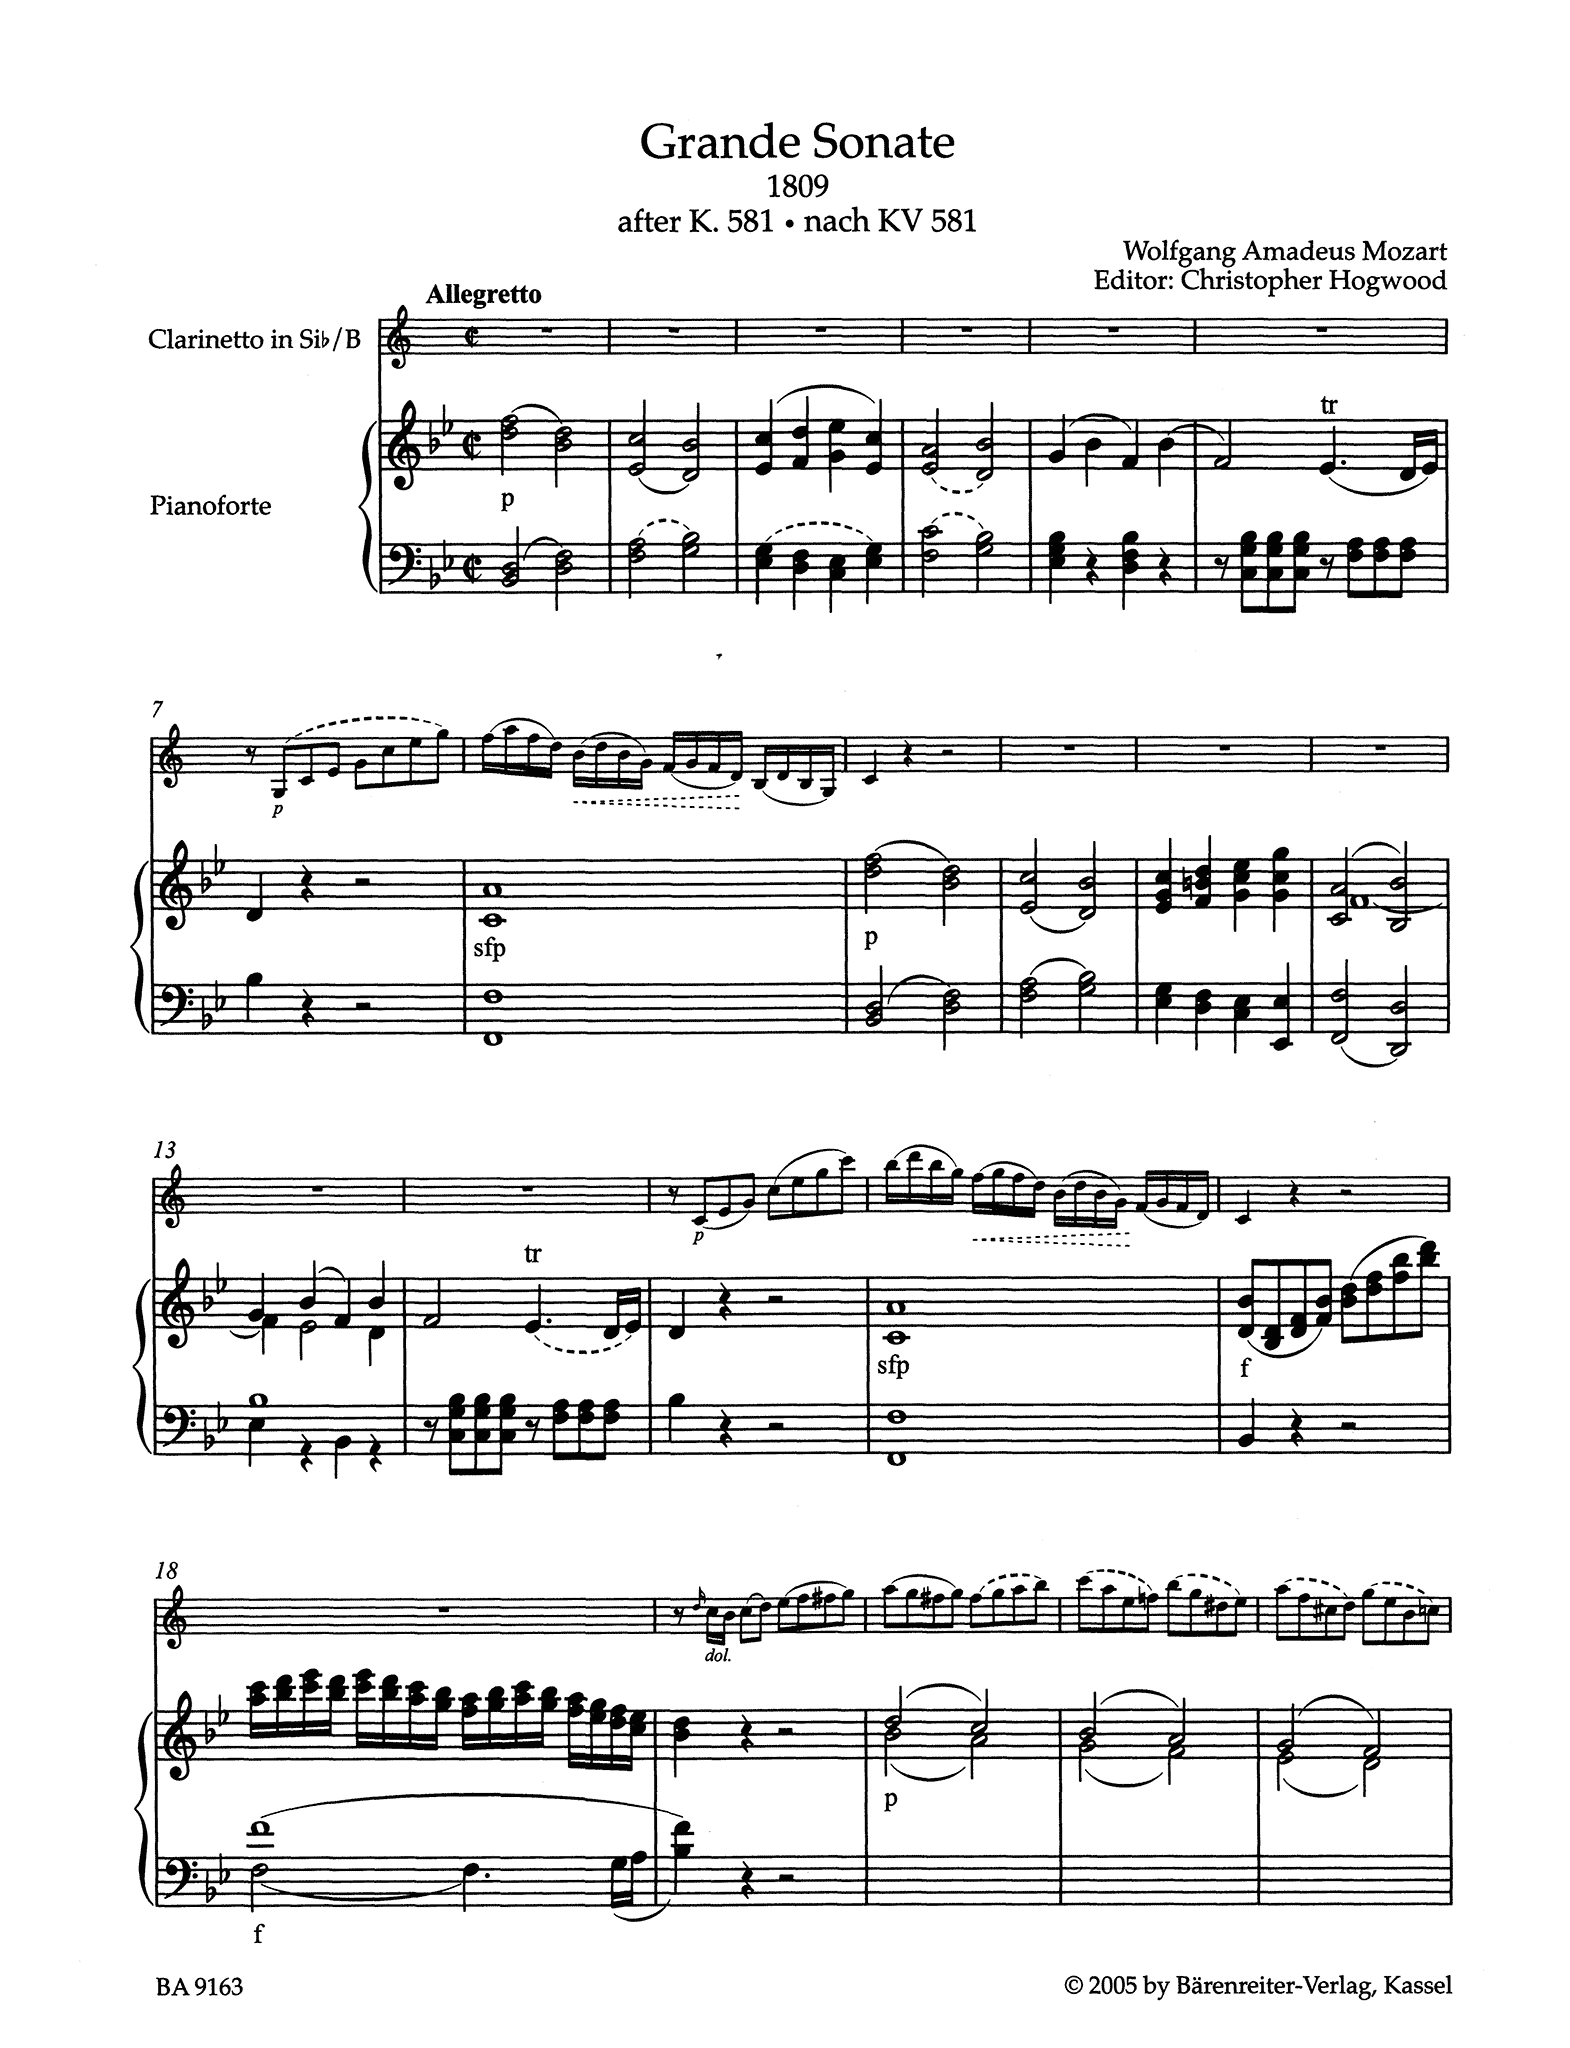 Grande Sonate after the Clarinet Quintet, K. 581 - Movement 1